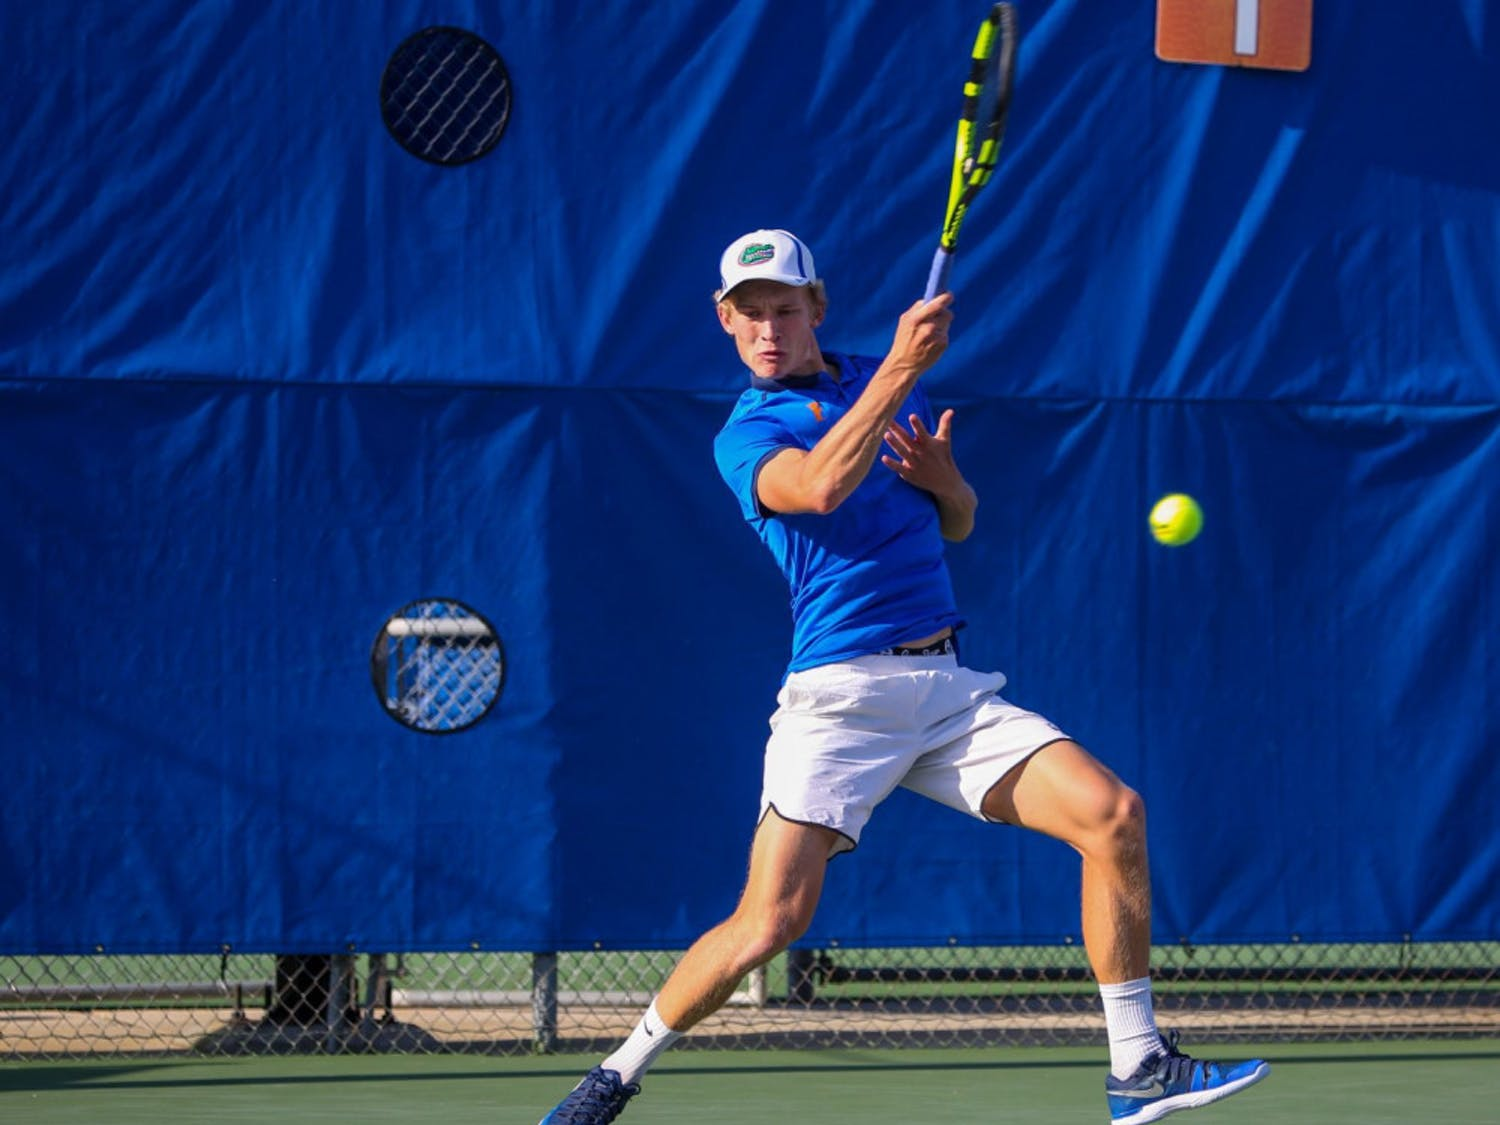 Senior Johannes Ingildsen picked up his 100th win for Florida against USF on Sunday. The Copenhagen, Denmark native now ranks eighth in singles victory at UF.